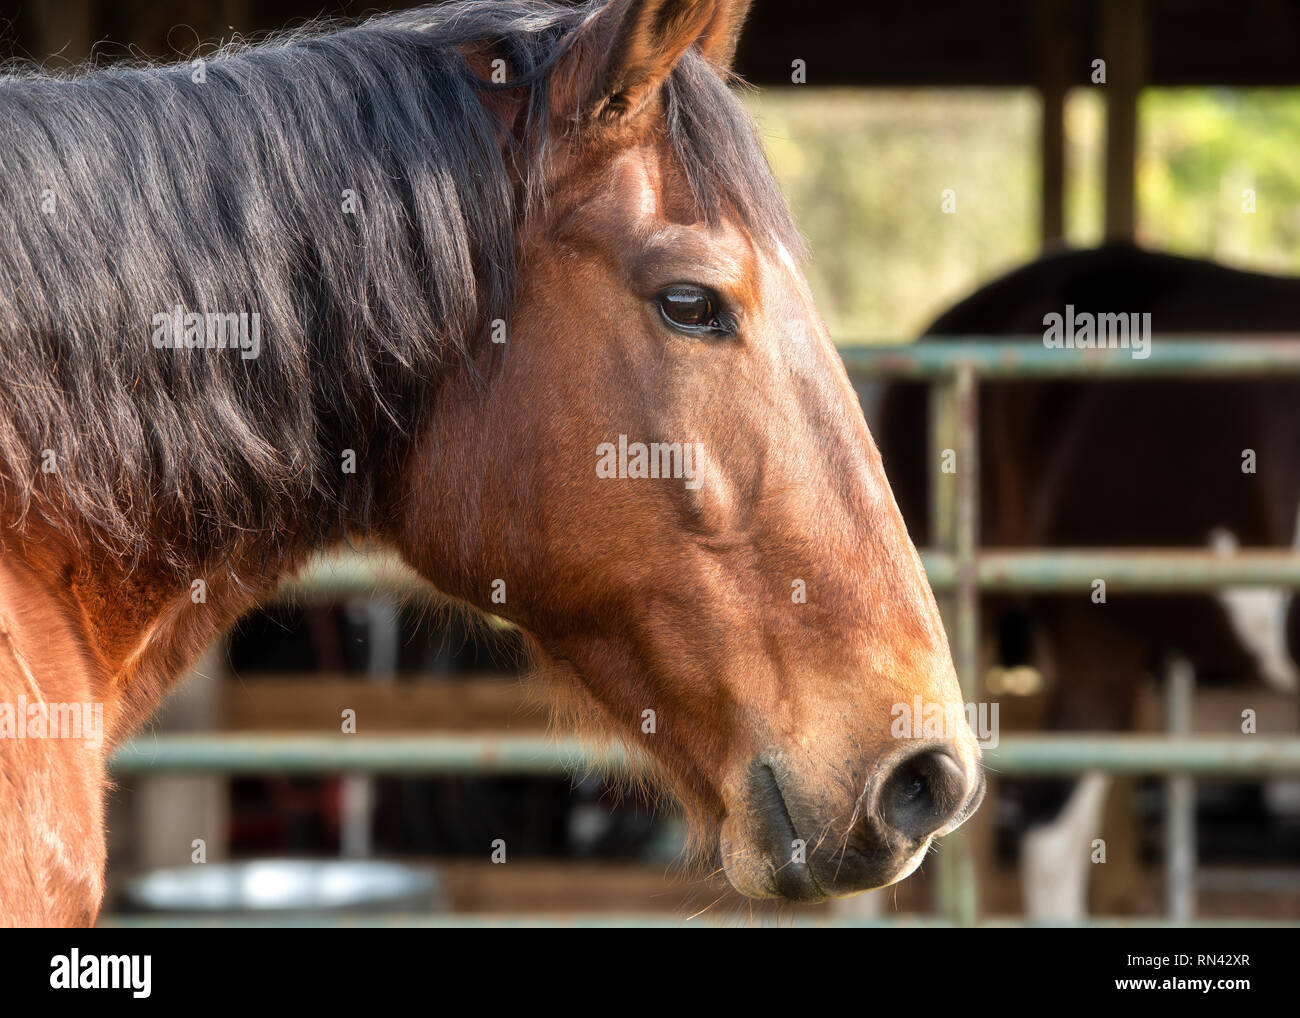 Bay horse head portrait.  Right side of horse head.  Black main, brown head. - Stock Image